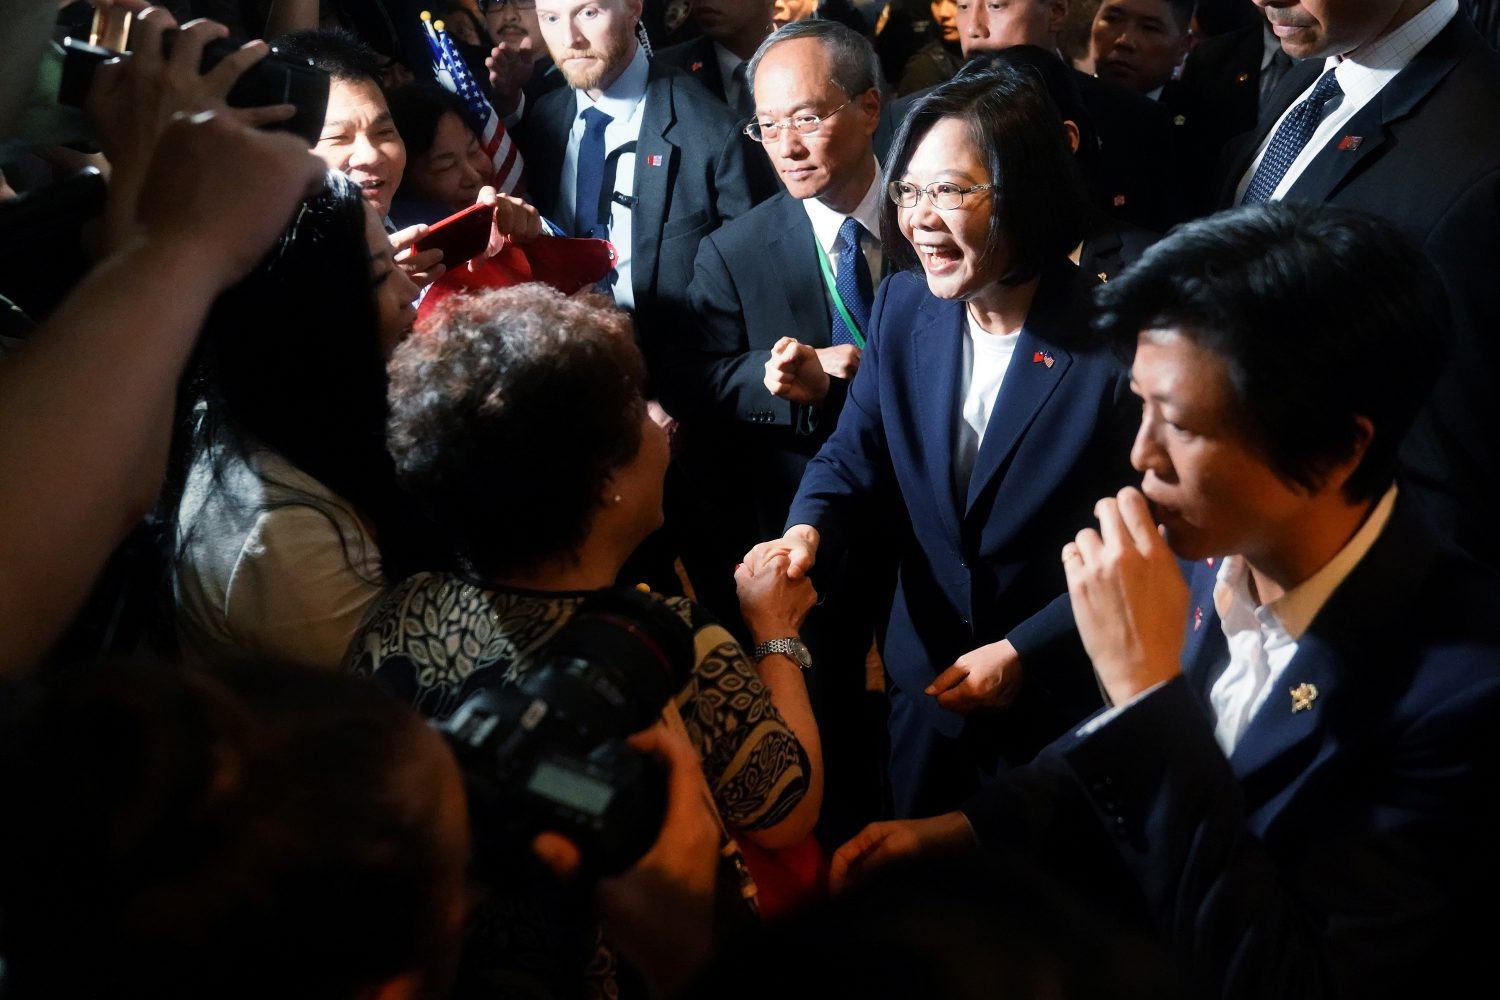 Taiwan's President Tsai Ing-wen arrives at the hotel where she is supposed to stay during her visit in the Manhattan borough of New York, New York, U.S., July 11, 2019. REUTERS/Carlo Allegri